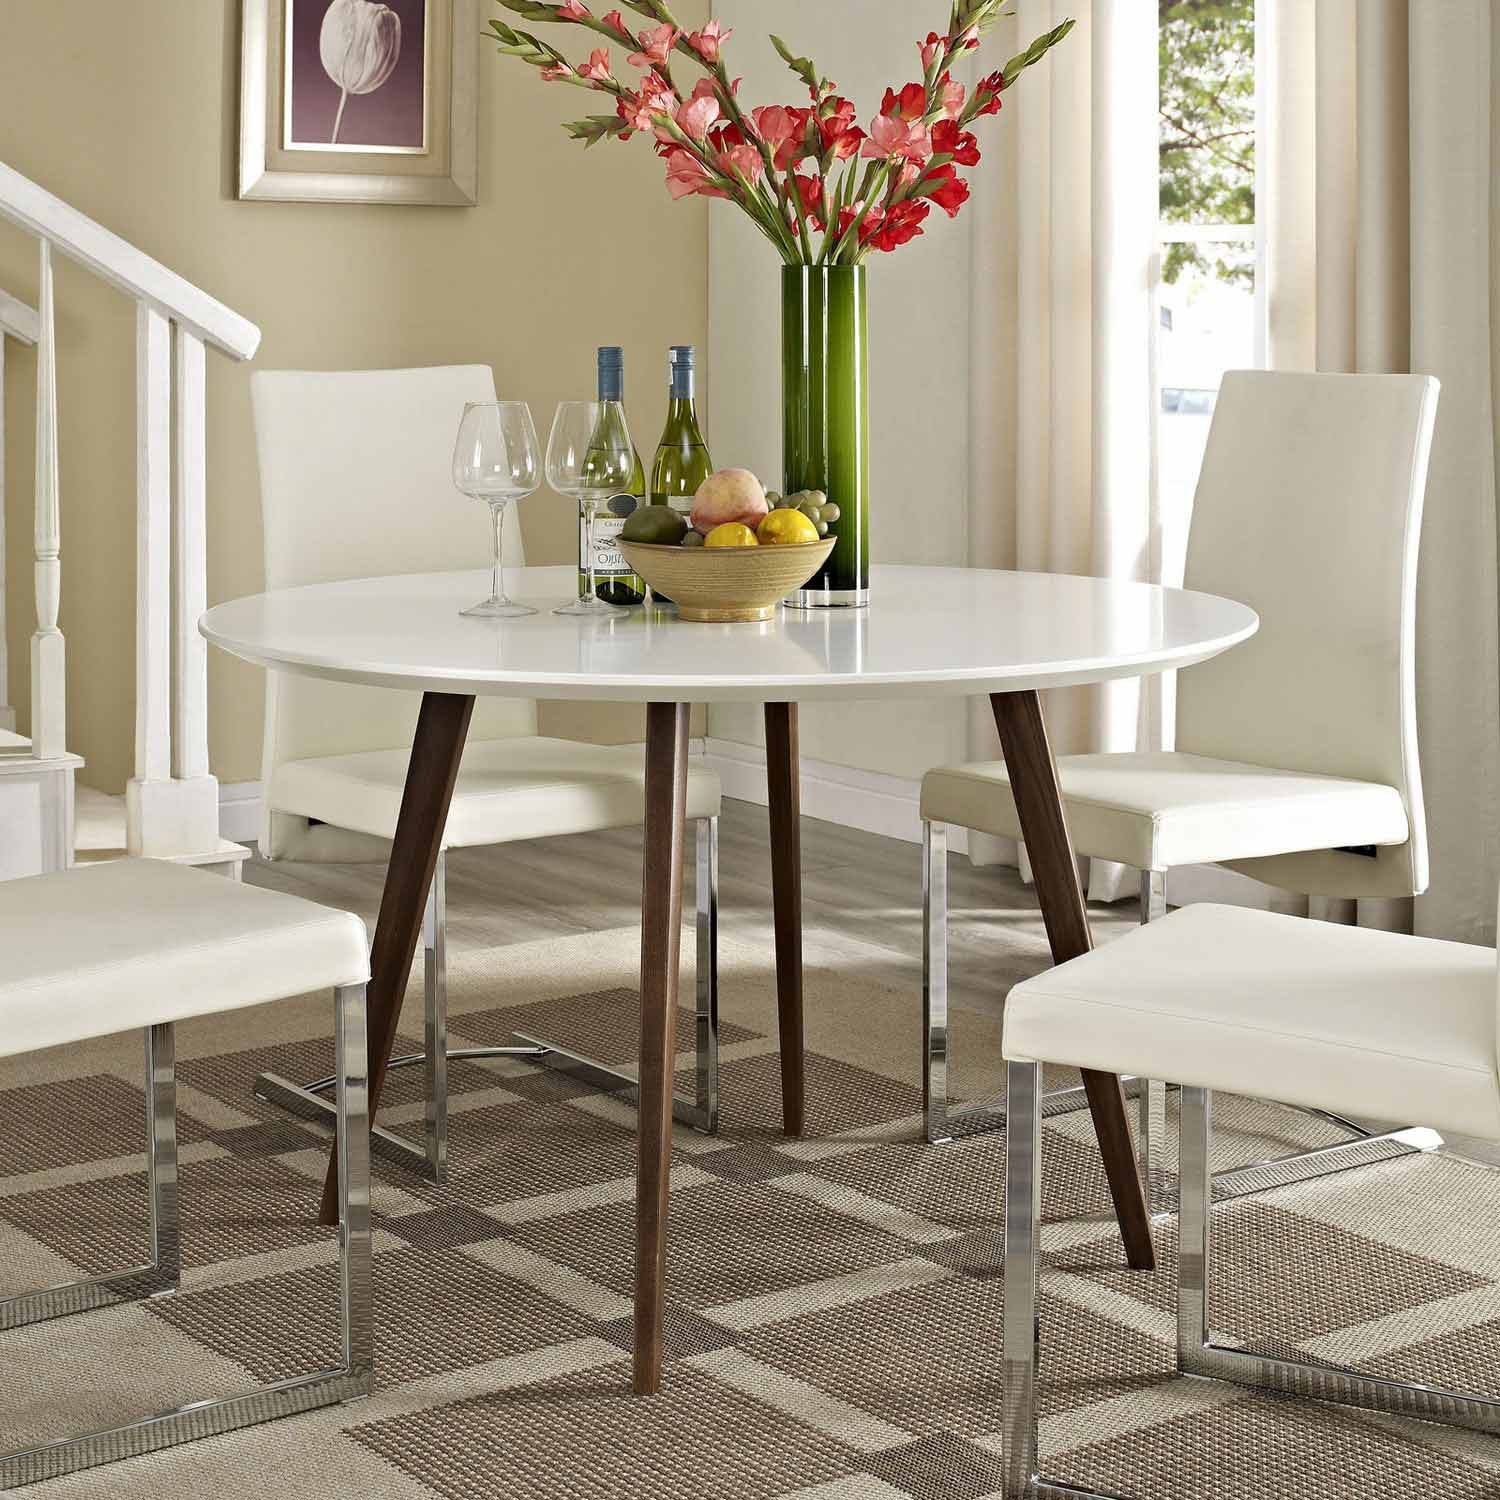 Modway Canvas Dining Table - White